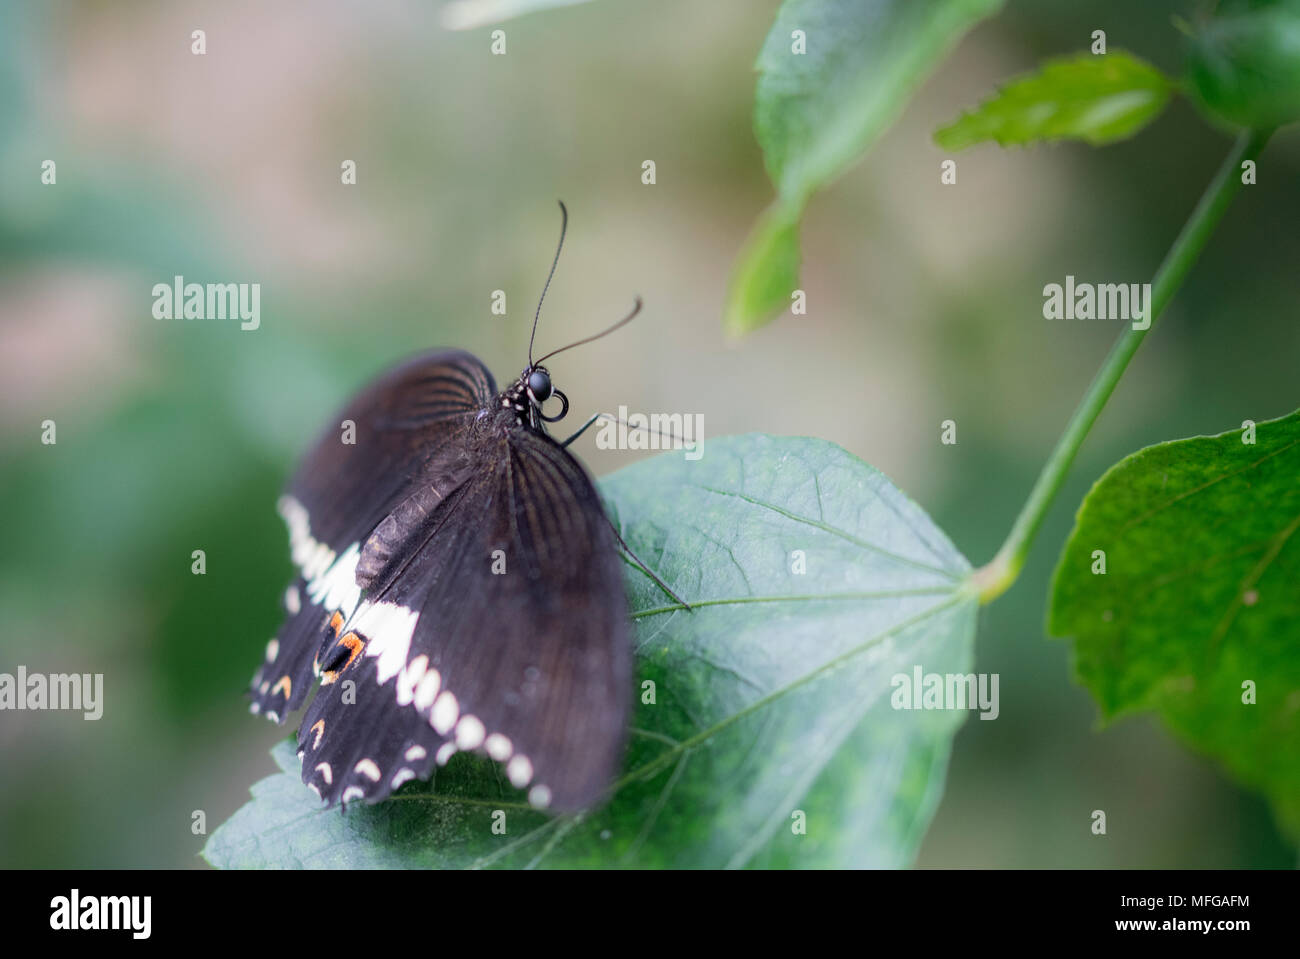 Macro butterfly on soft focus background - Stock Image